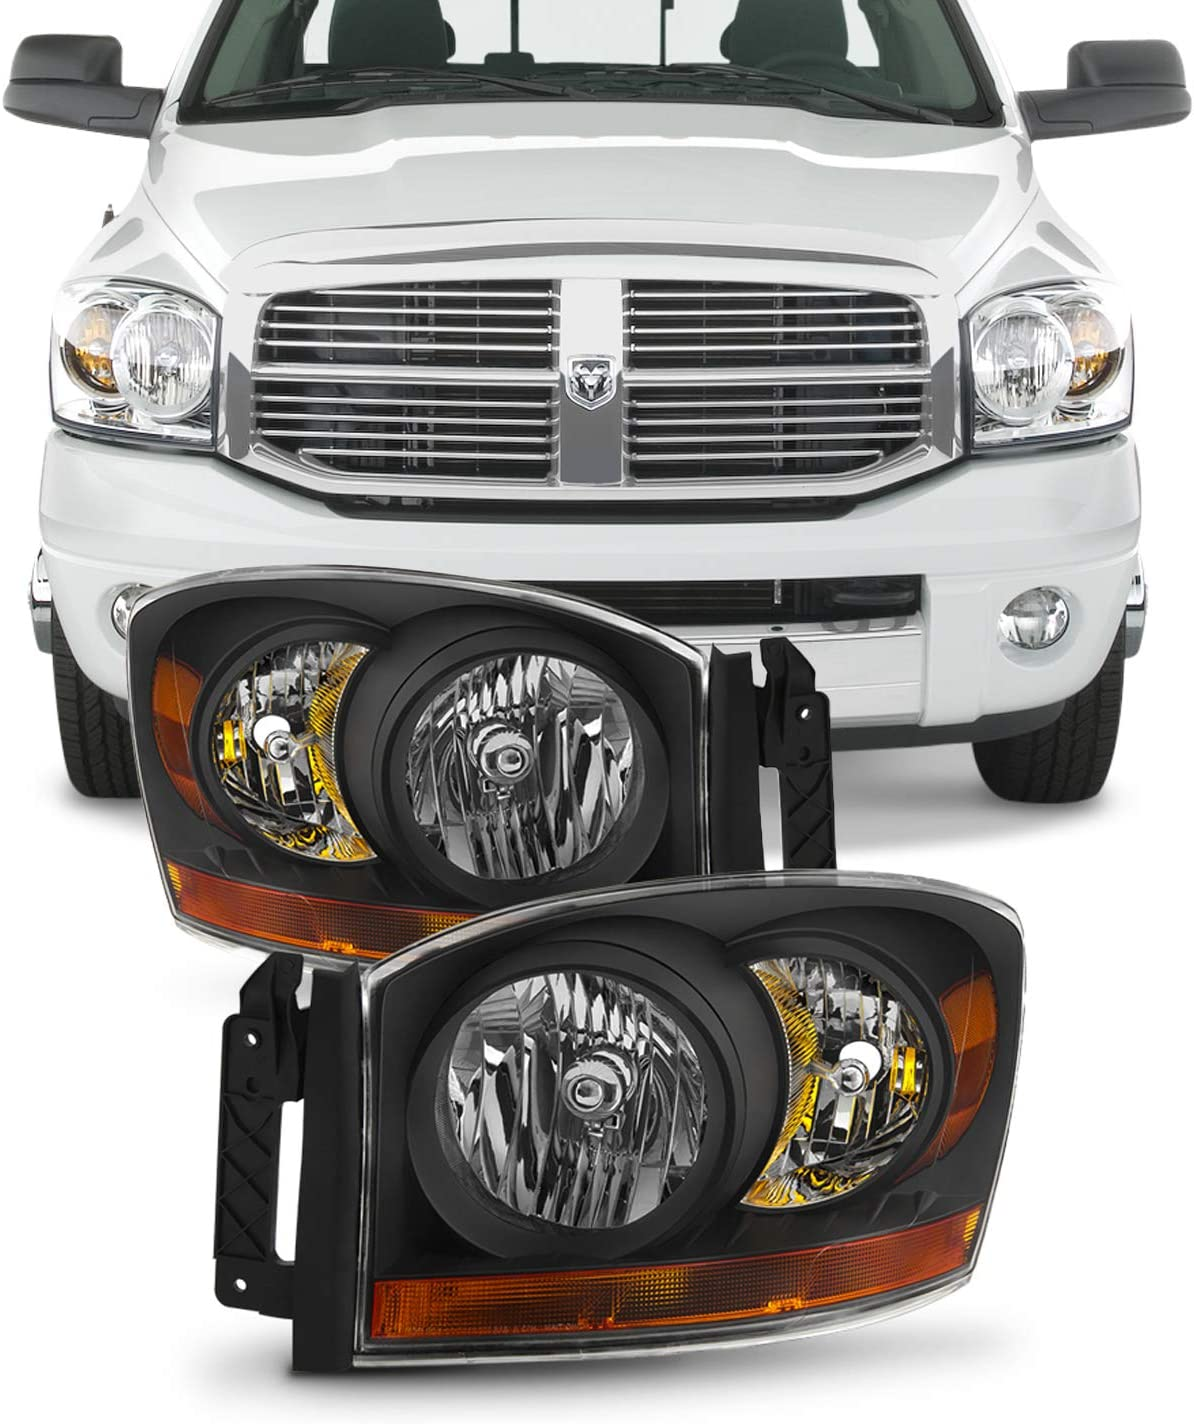 For Black Smoke 06-08 Ram 1500 06-09 Ram 2500 3500 Pickup Truck Headlights Front Lamps Replacement